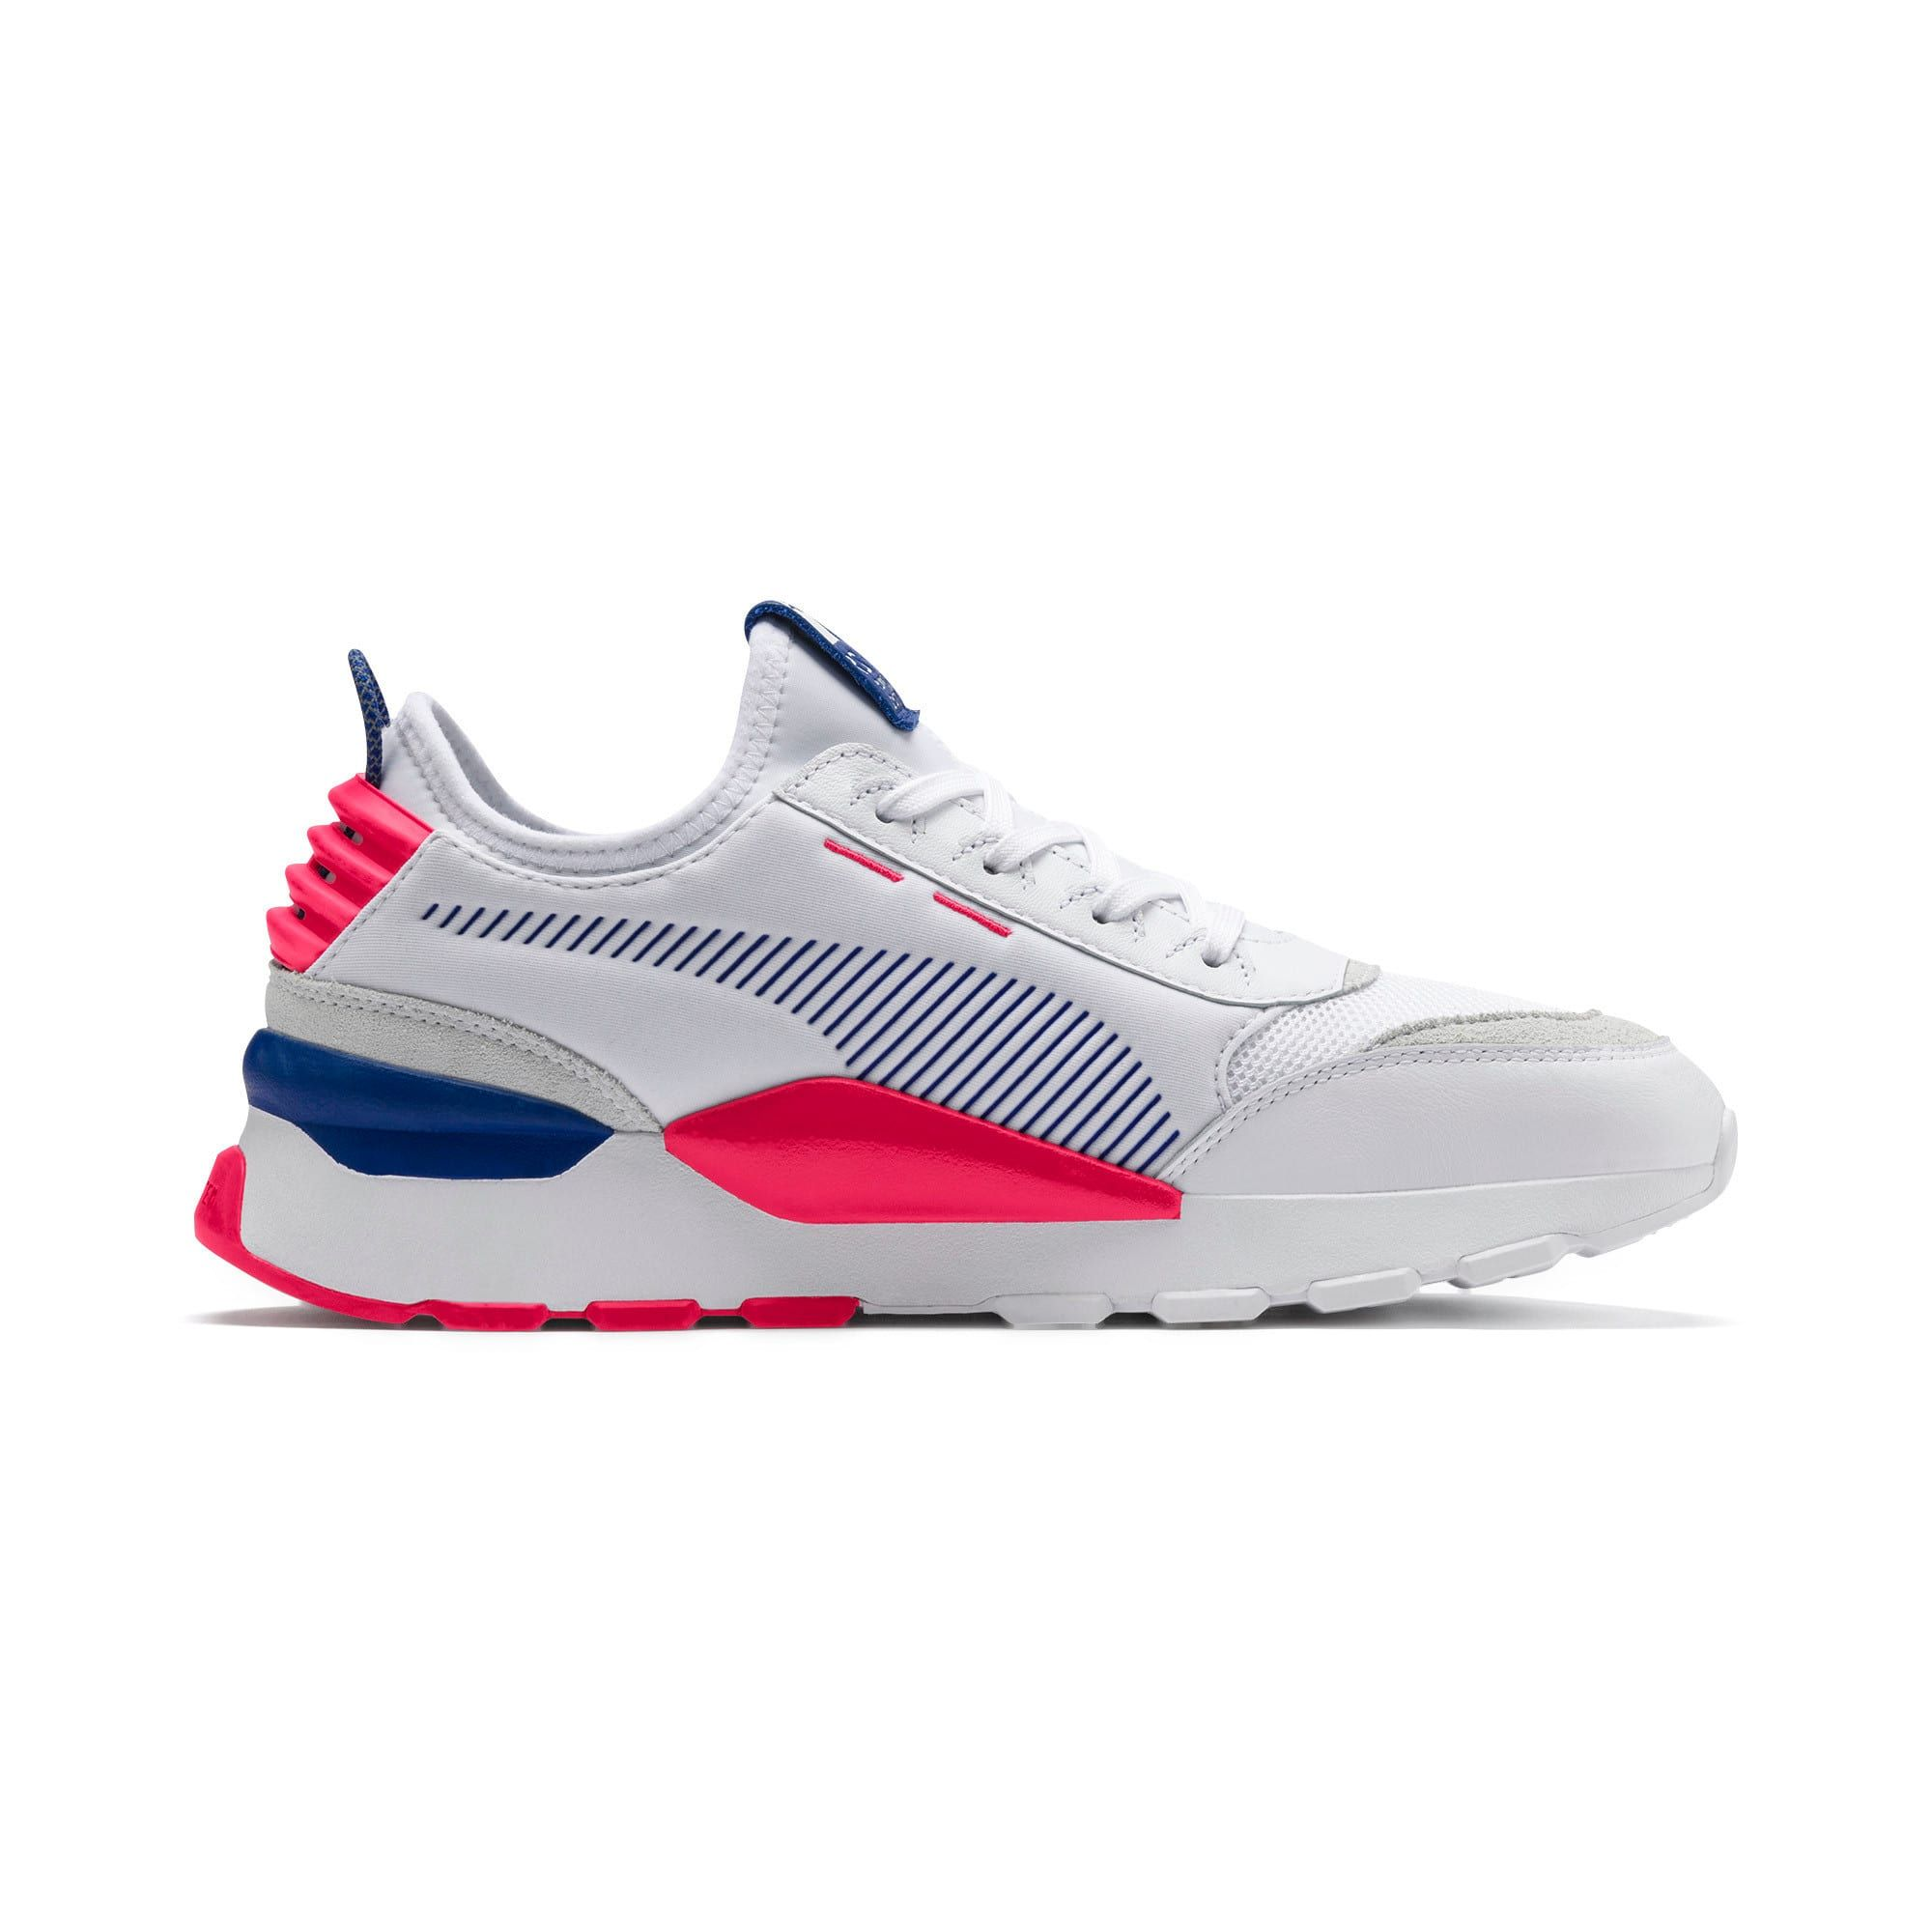 PUMA RS-0 Core Trainers in White/S Web/Rose size 9.5 | Pumas ...